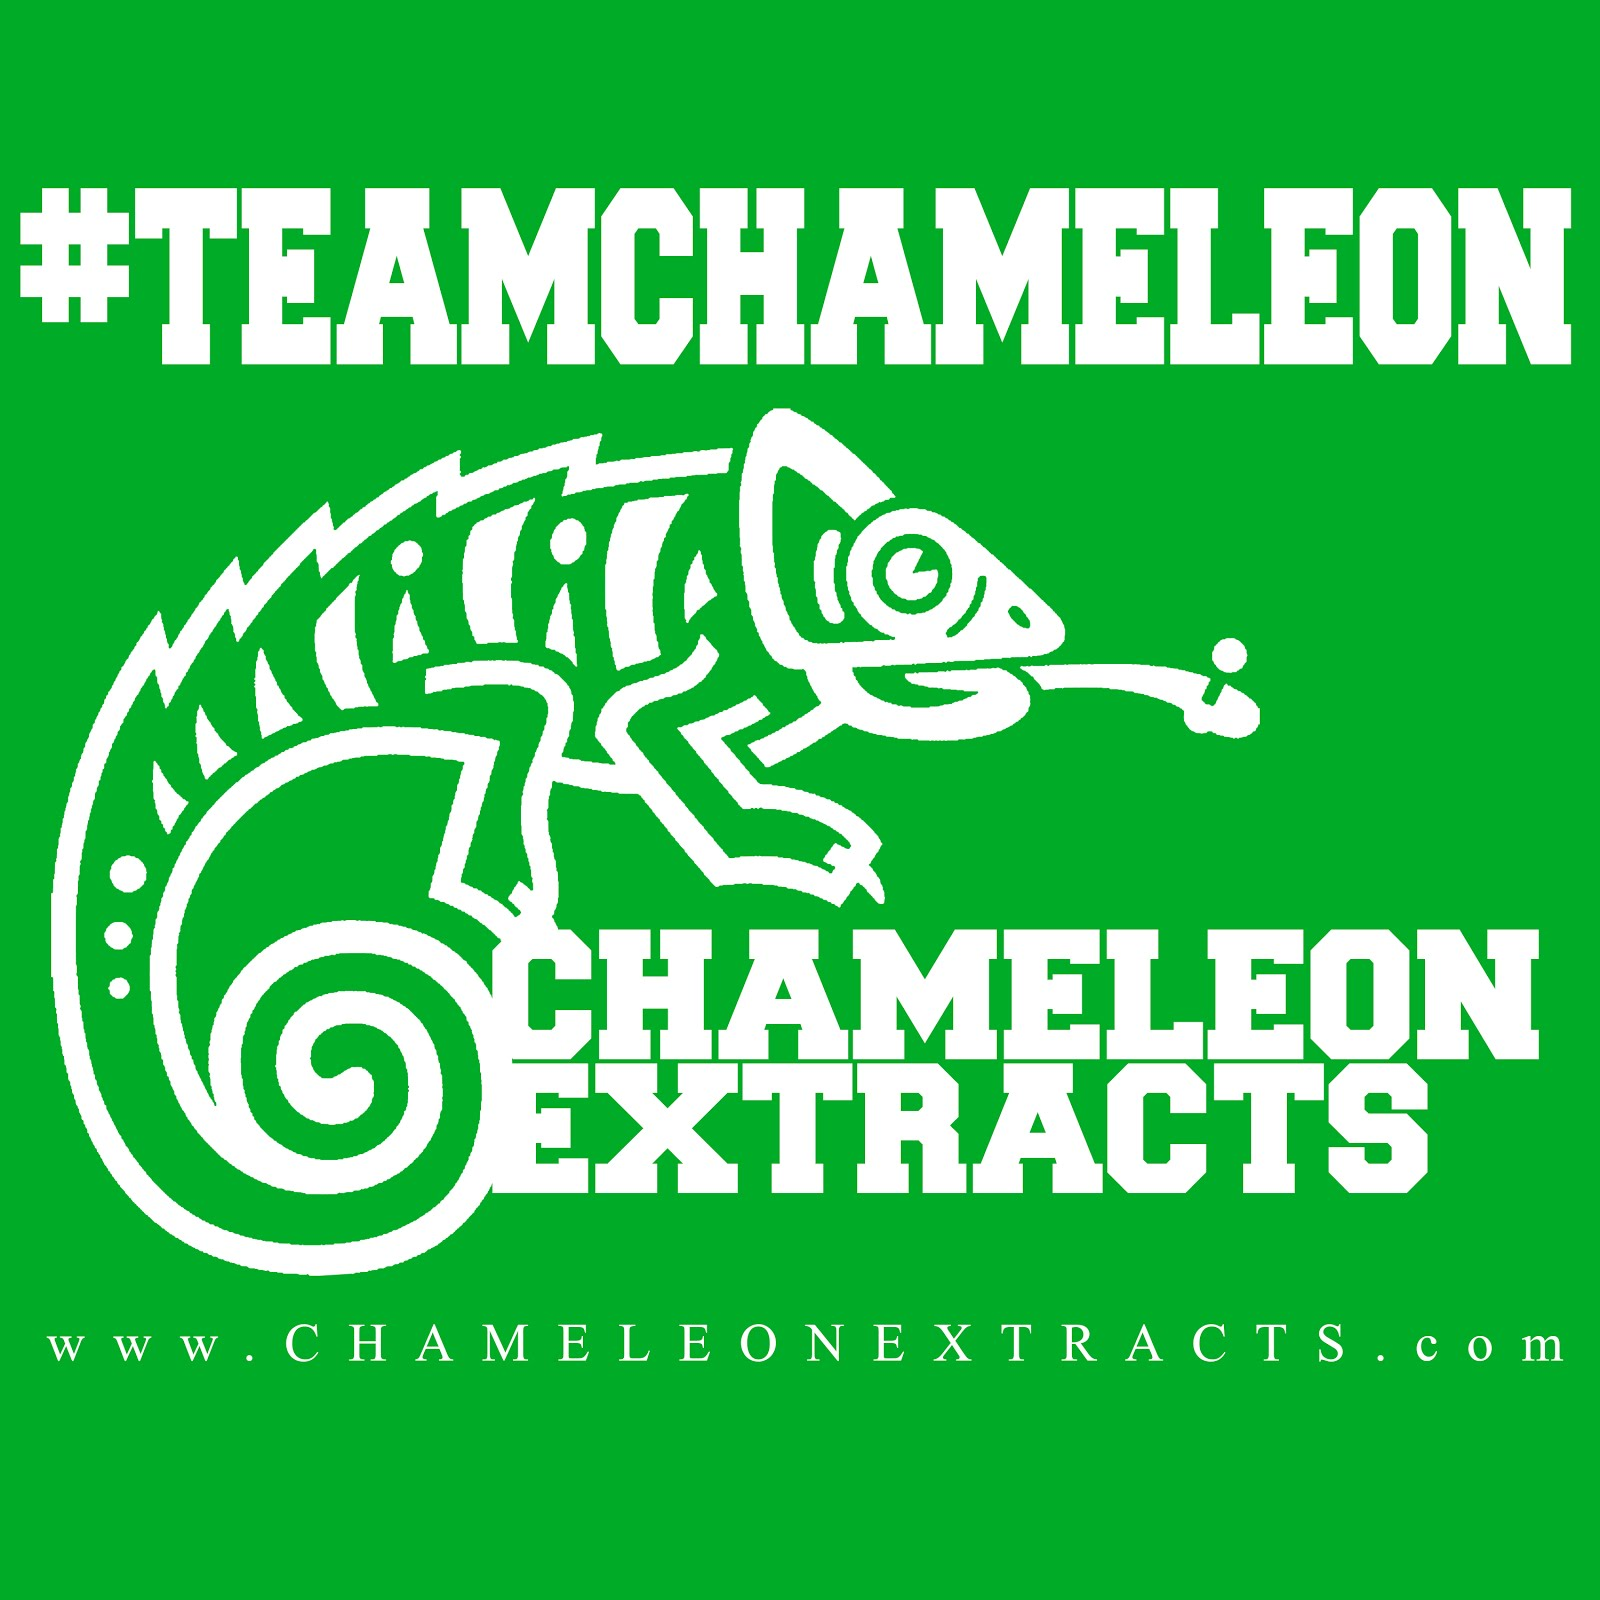 #TEAMCHAMELEON